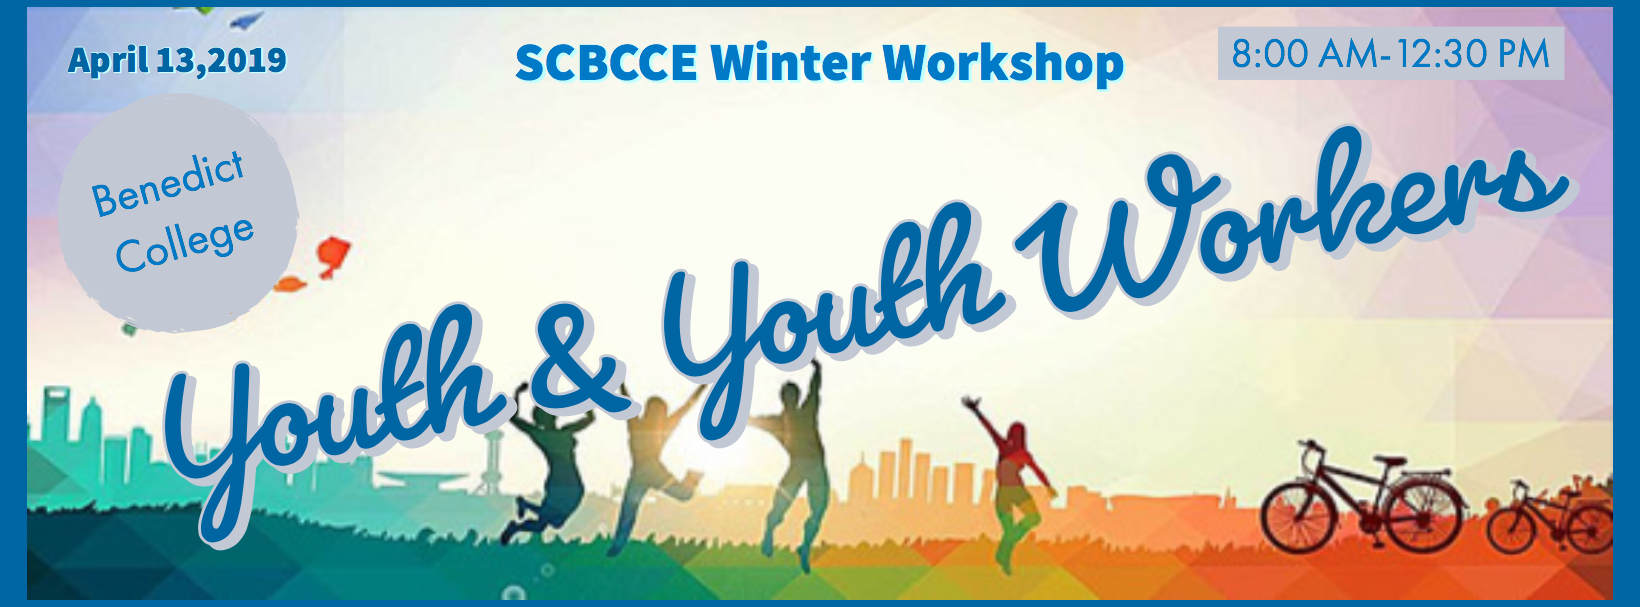 Youth & Youth Workers Workshop